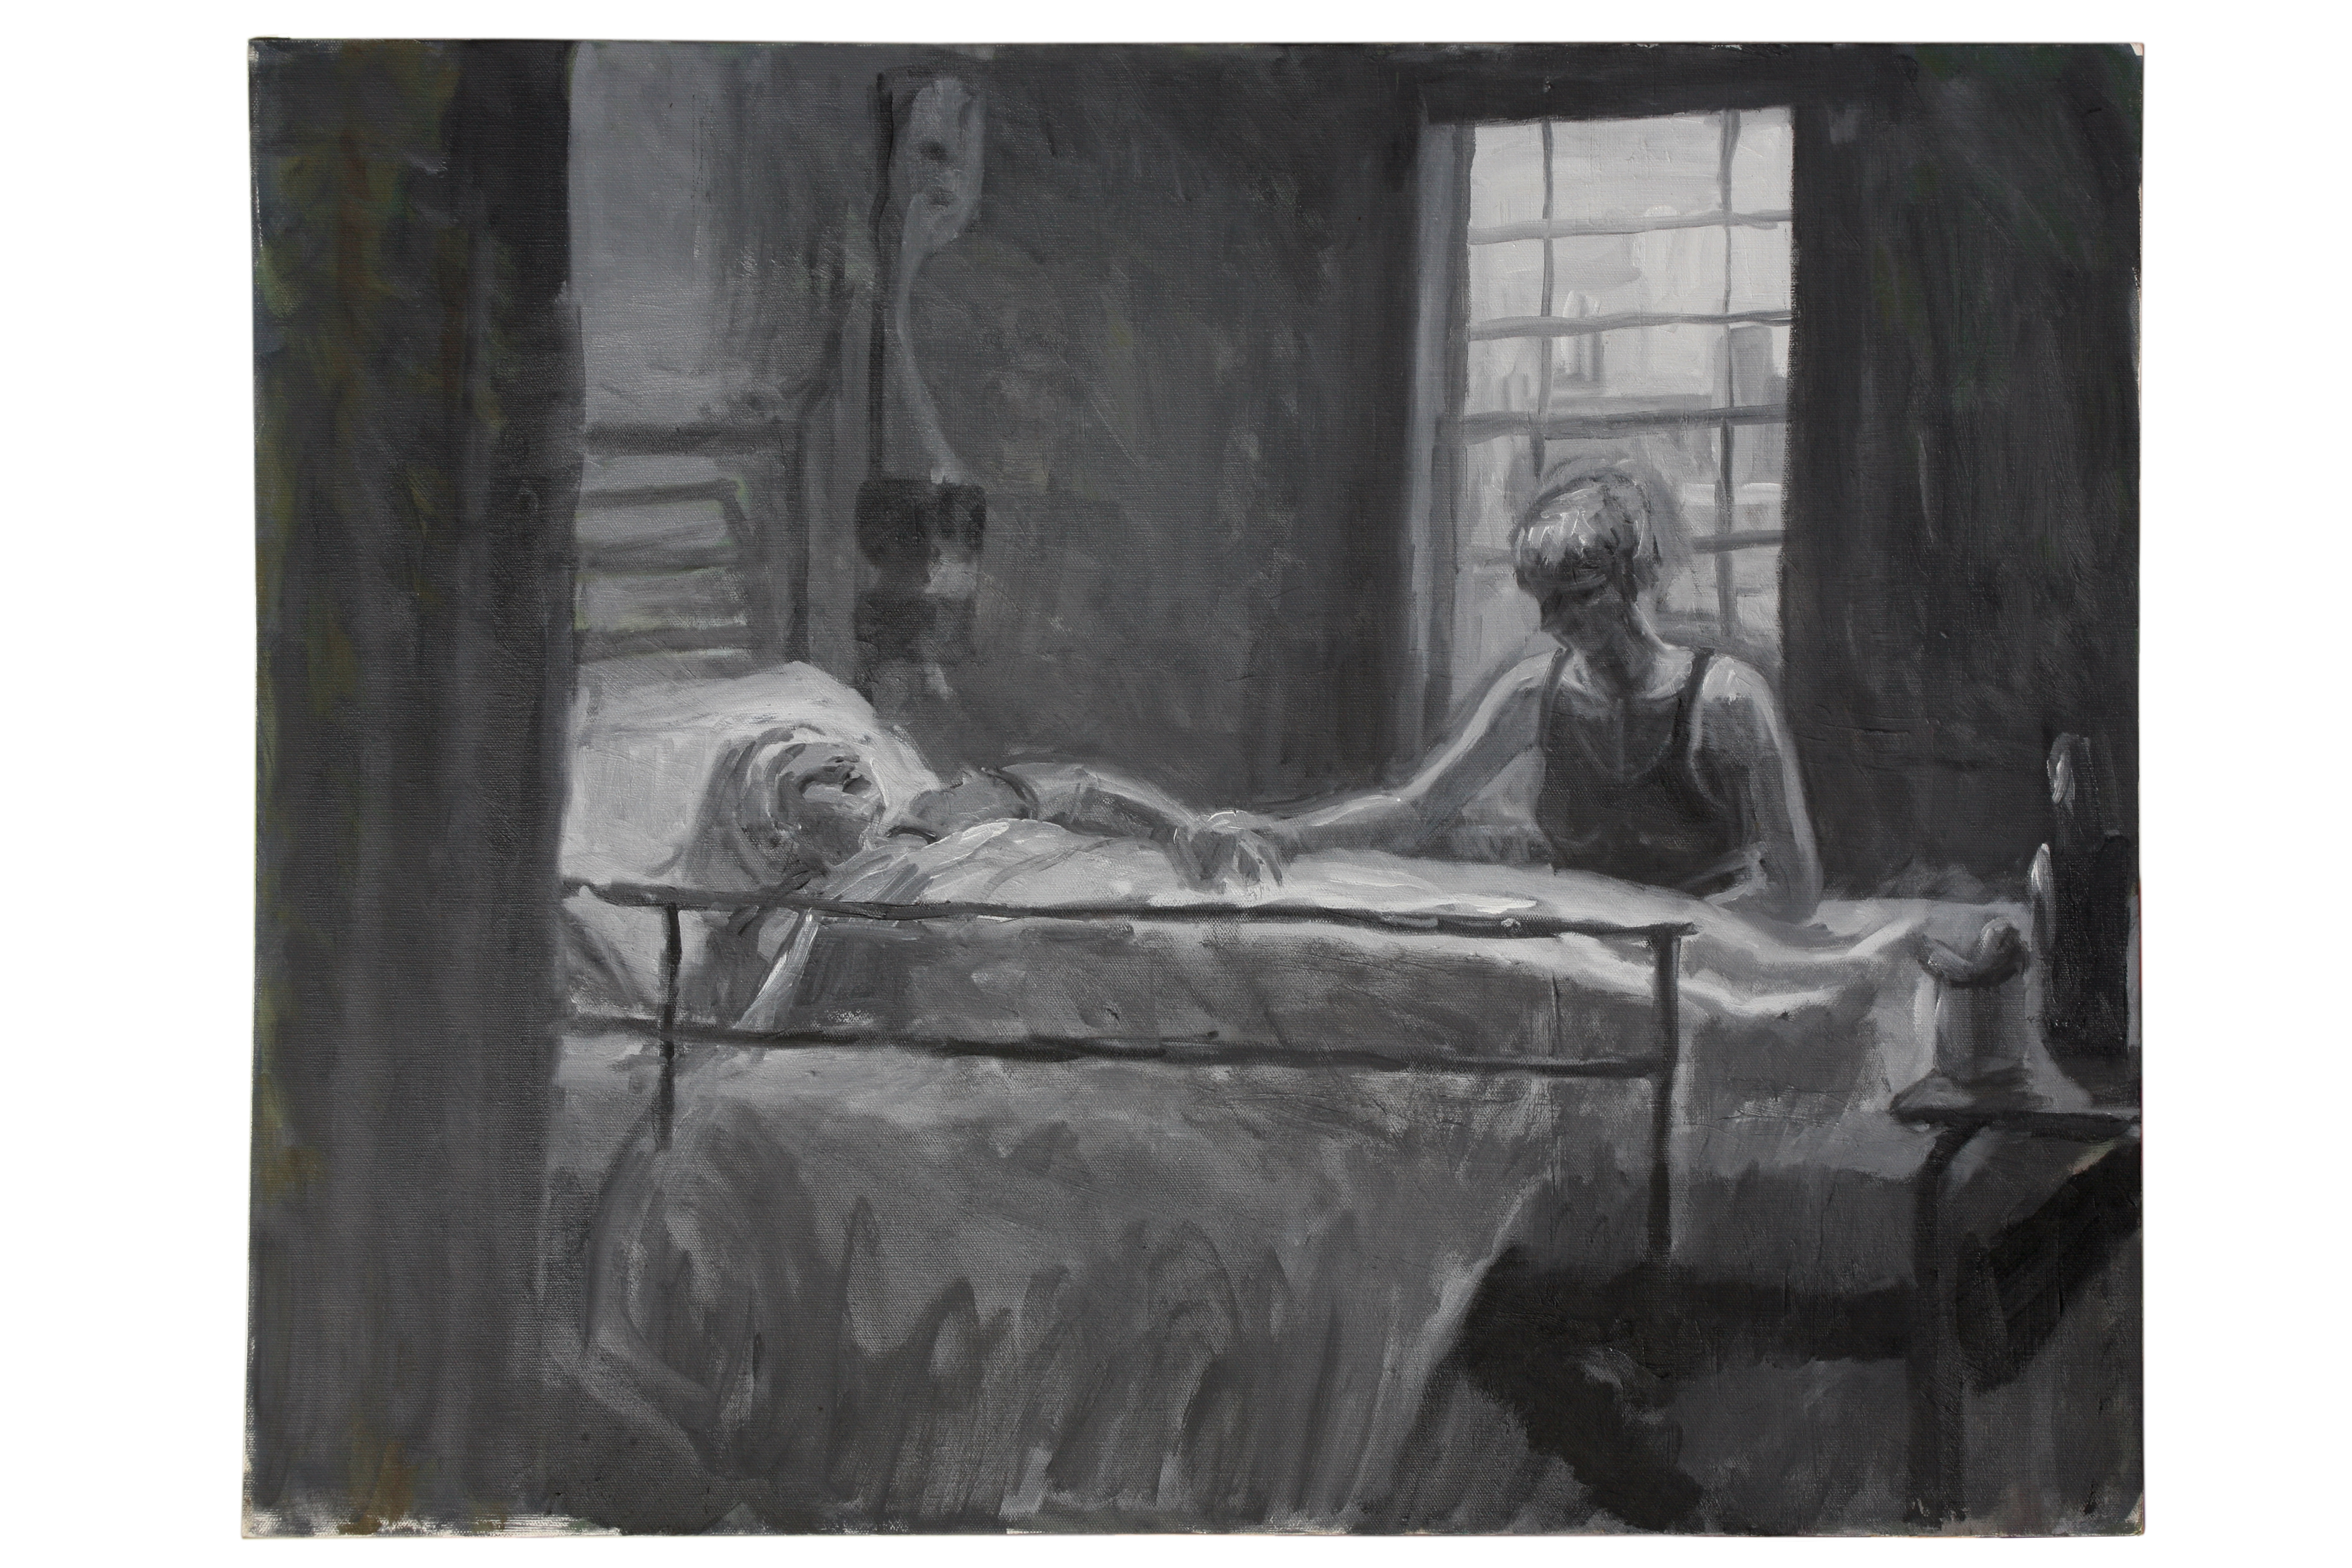 Oil on Canvas. Mum in Dorcheter Hospital after Stroke